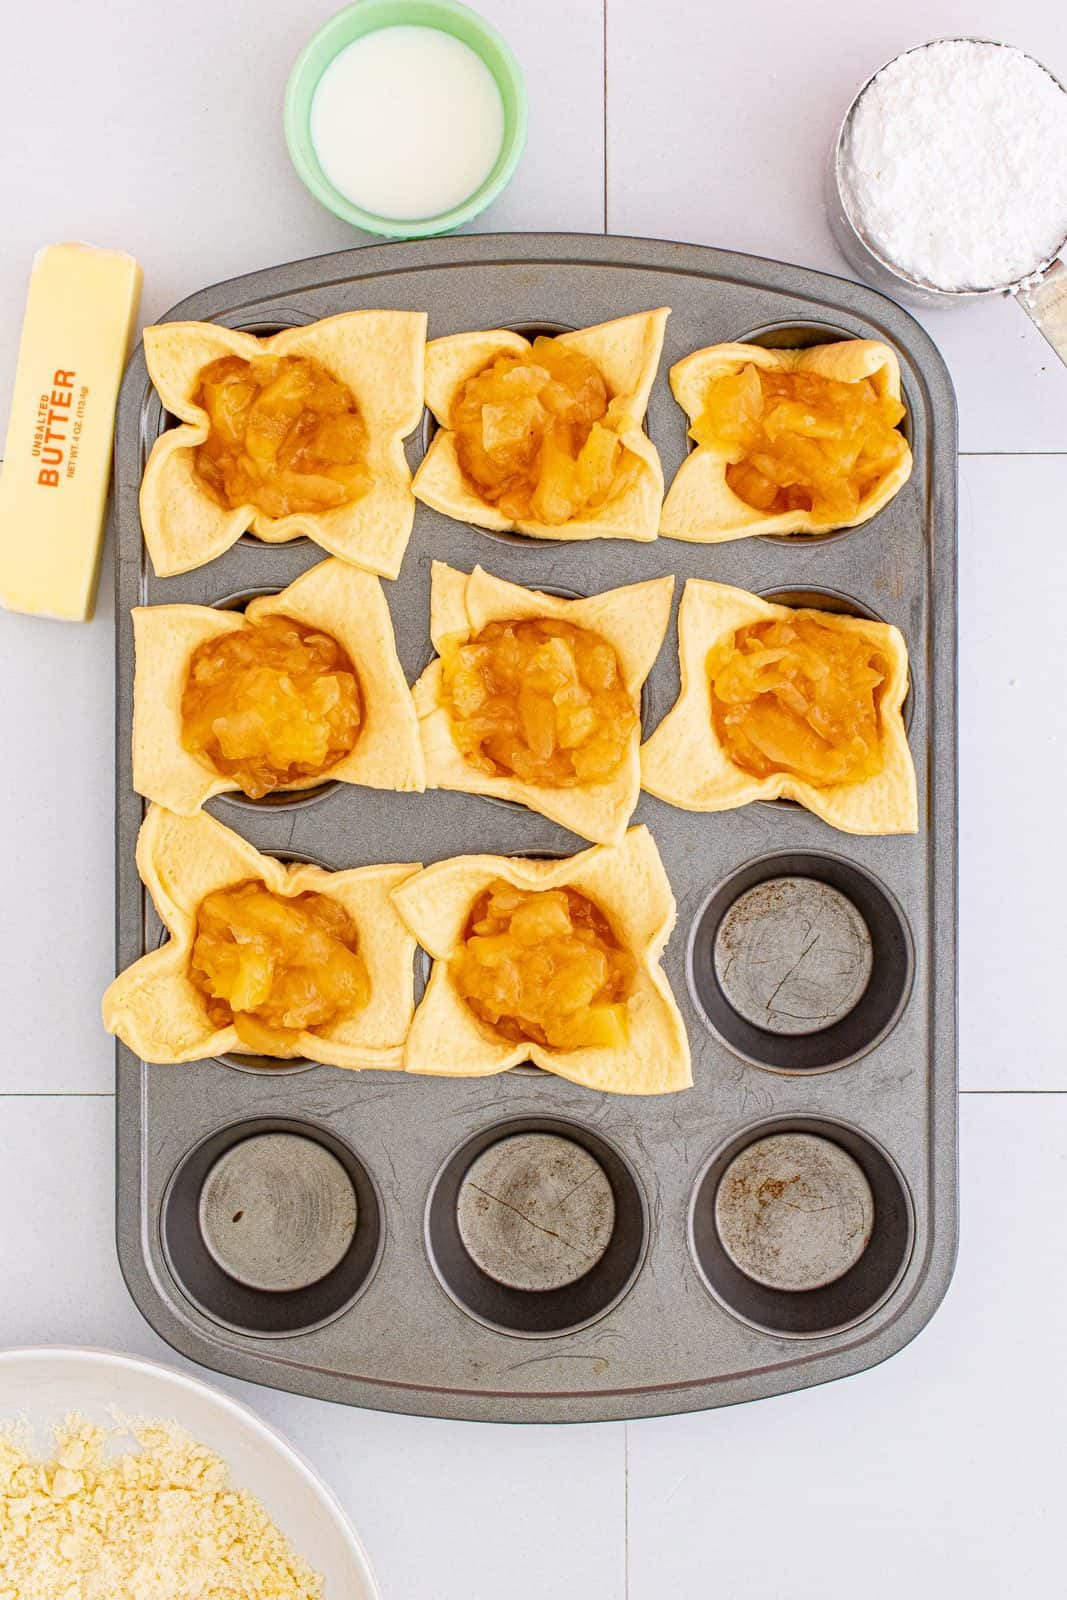 Apple pie filling added to crescent squares in muffin tin.